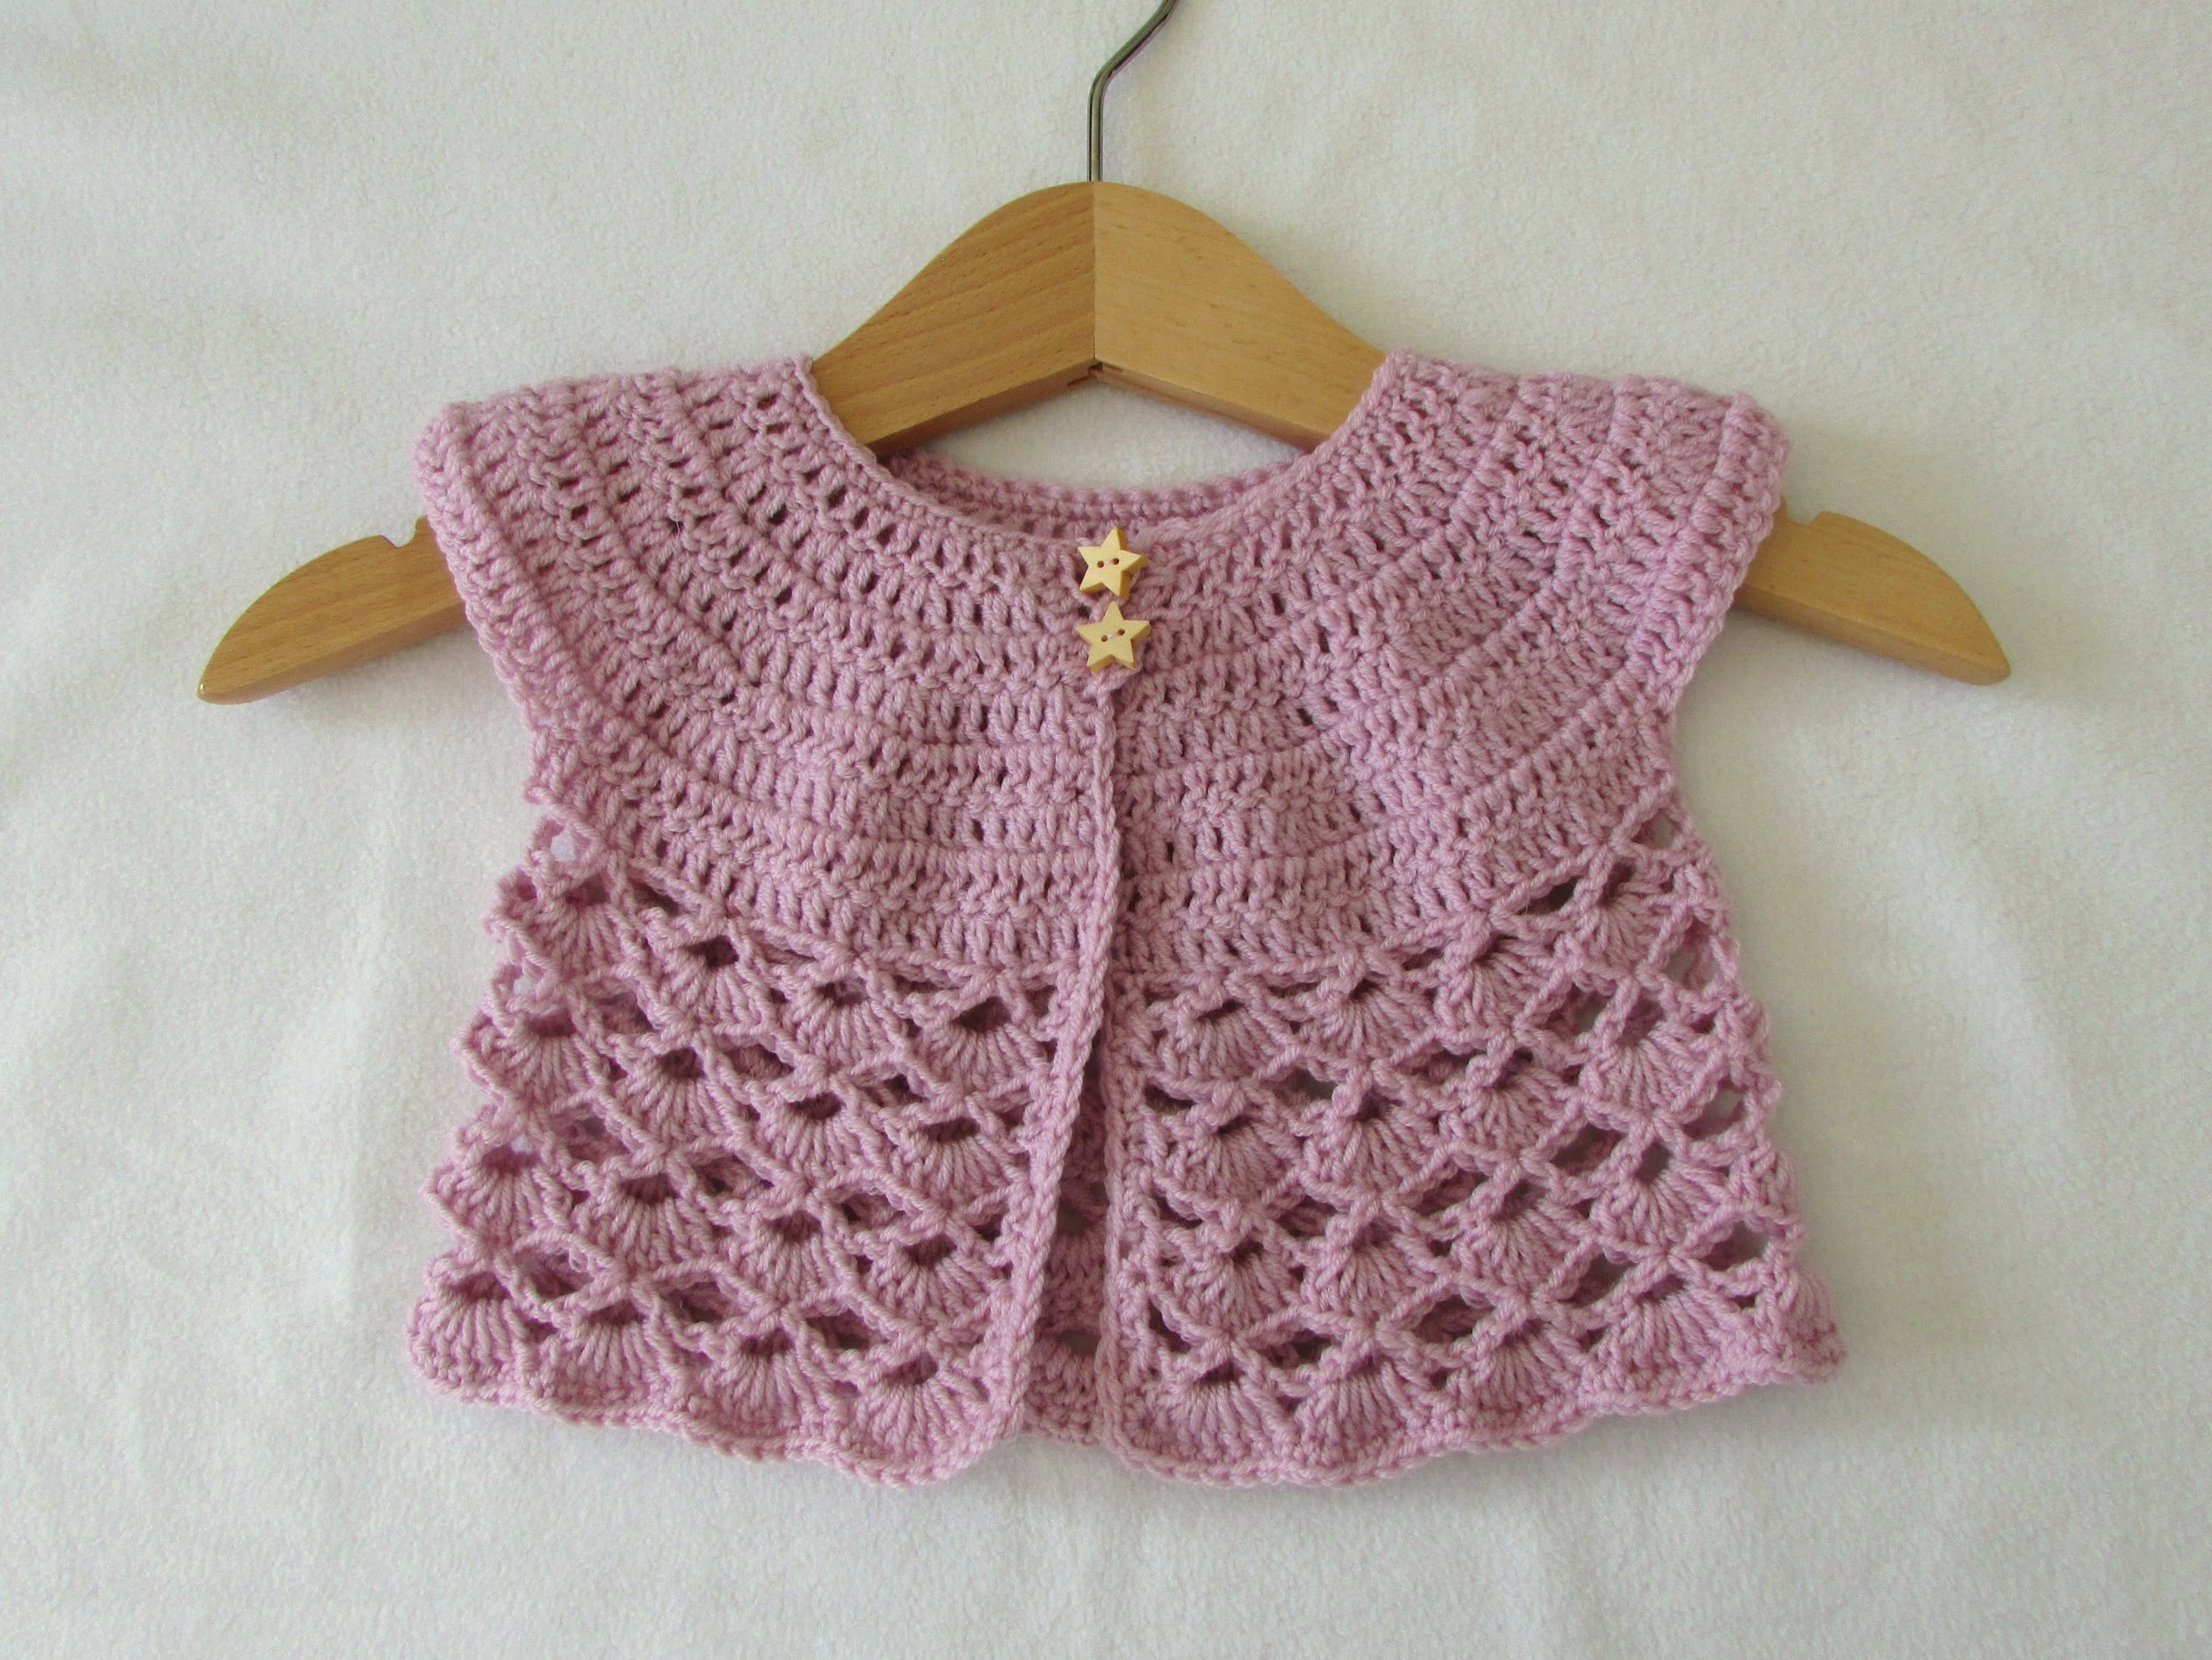 Baby Sweater Crochet Pattern Elegant How to Crochet Baby Sweater Cottageartcreations Of Amazing 40 Photos Baby Sweater Crochet Pattern